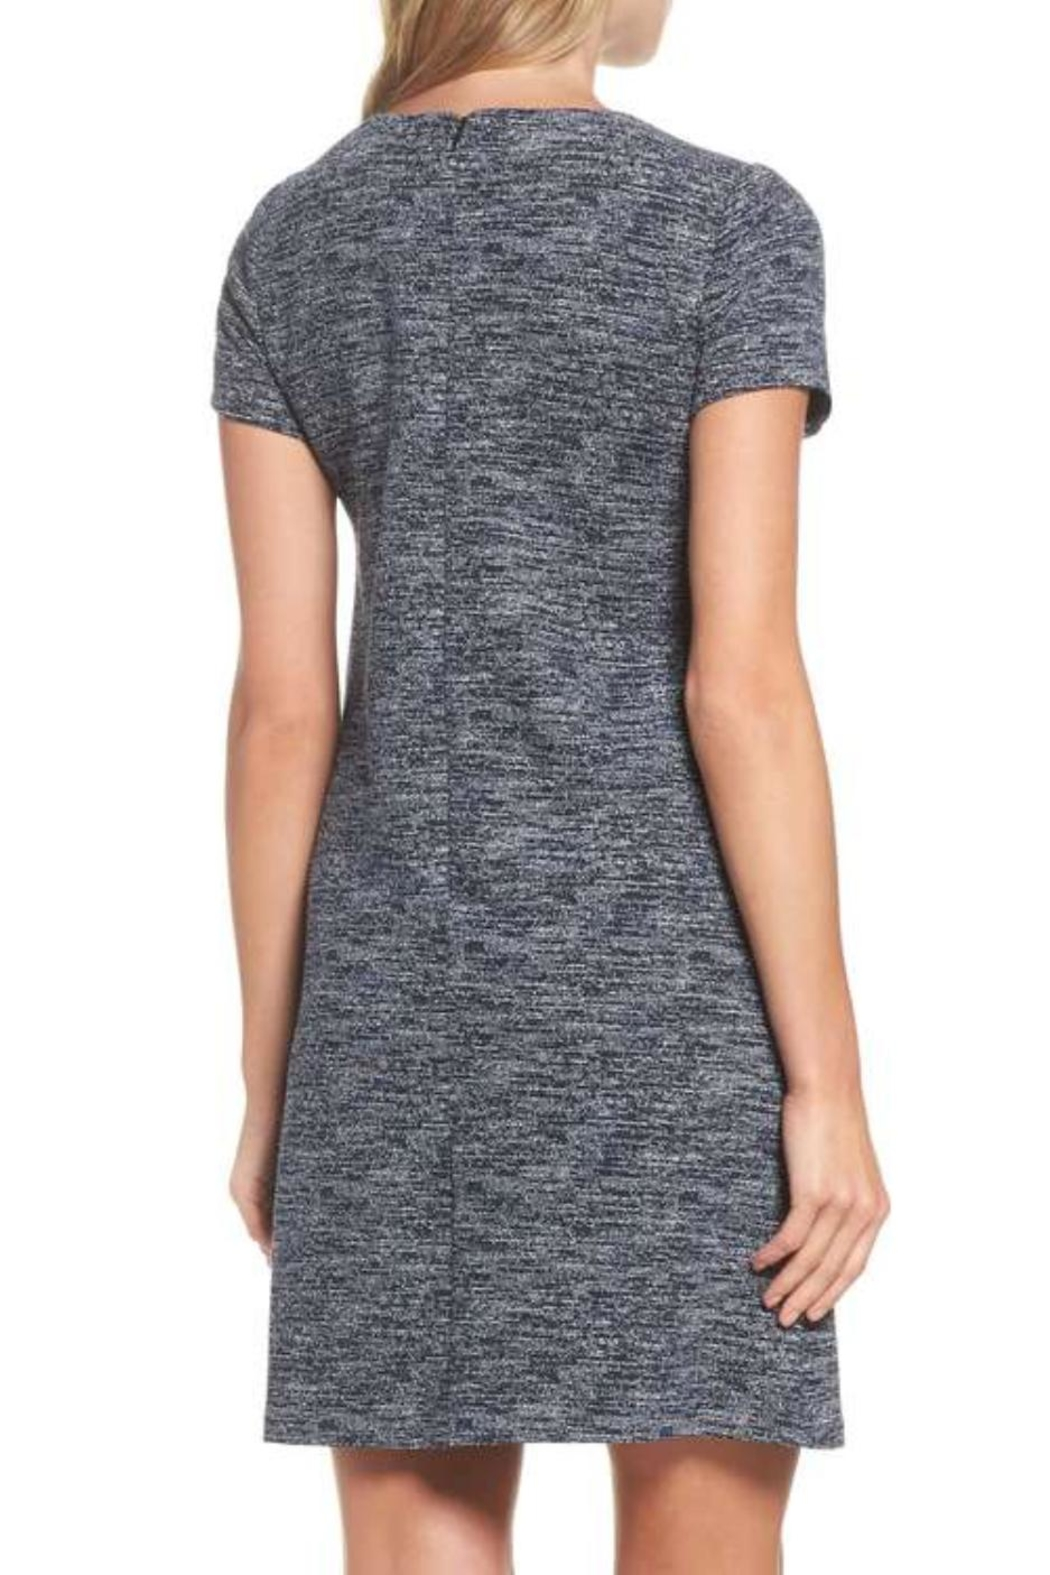 Adrianna Papell Knit Tweed Shift - Front Full Image